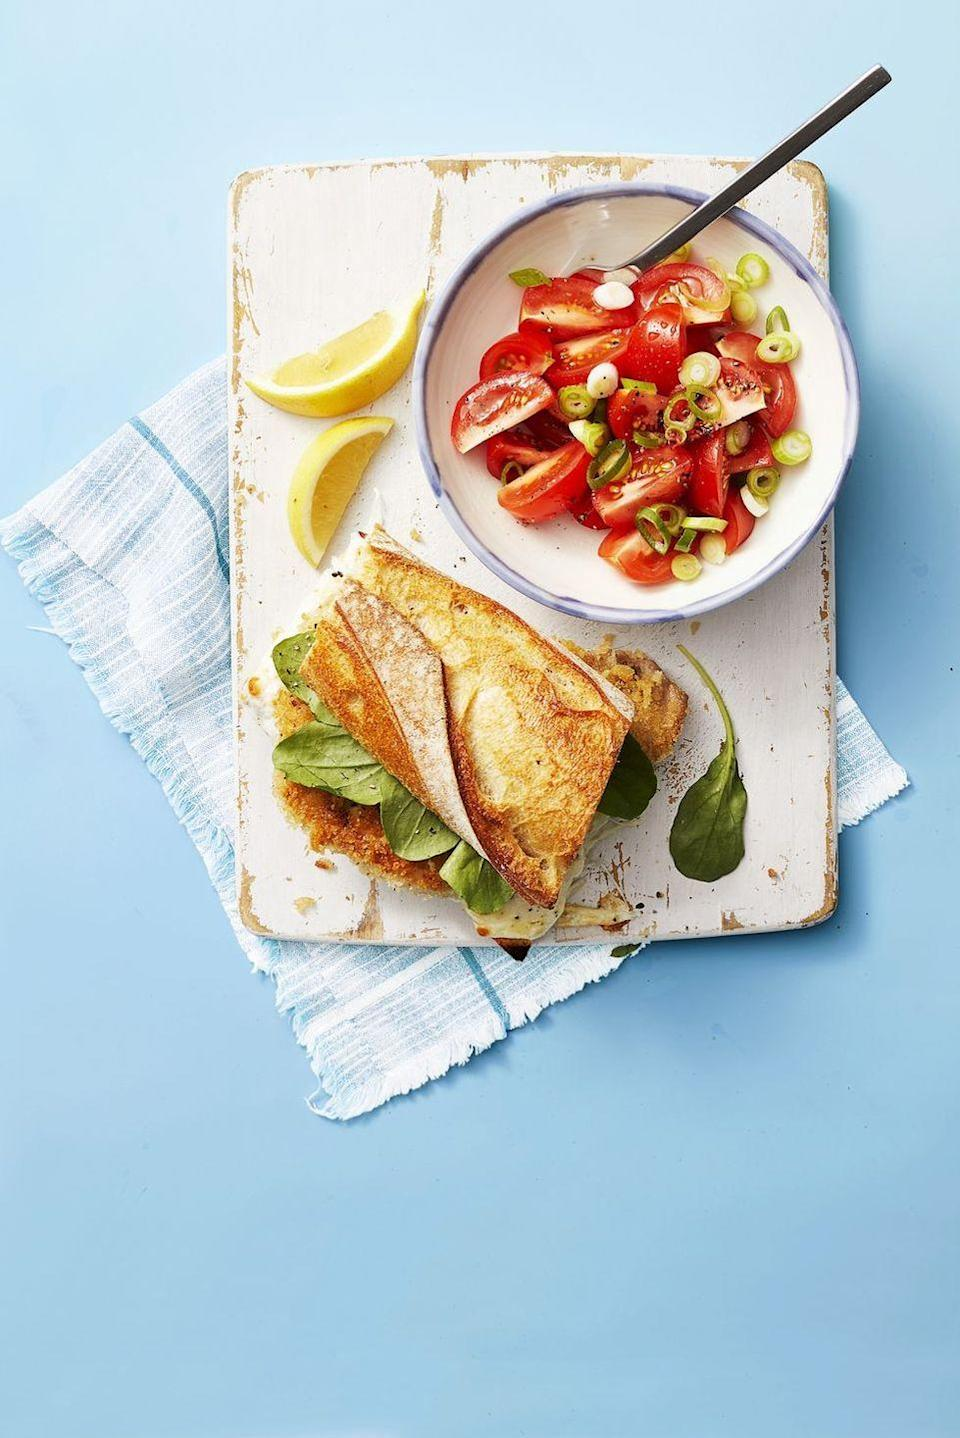 """<p>Our favorite part of this recipe might be the melty mozzarella on the broiled baguette, but the crispy pork cutlet comes in a close second.</p><p><em><a href=""""https://www.goodhousekeeping.com/food-recipes/easy/a27543087/pork-milanese-sandwich-with-tomato-salad-recipe/"""" rel=""""nofollow noopener"""" target=""""_blank"""" data-ylk=""""slk:Get the recipe for Pork Milanese Sandwich with Tomato Salad »"""" class=""""link rapid-noclick-resp"""">Get the recipe for Pork Milanese Sandwich with Tomato Salad »</a></em></p>"""